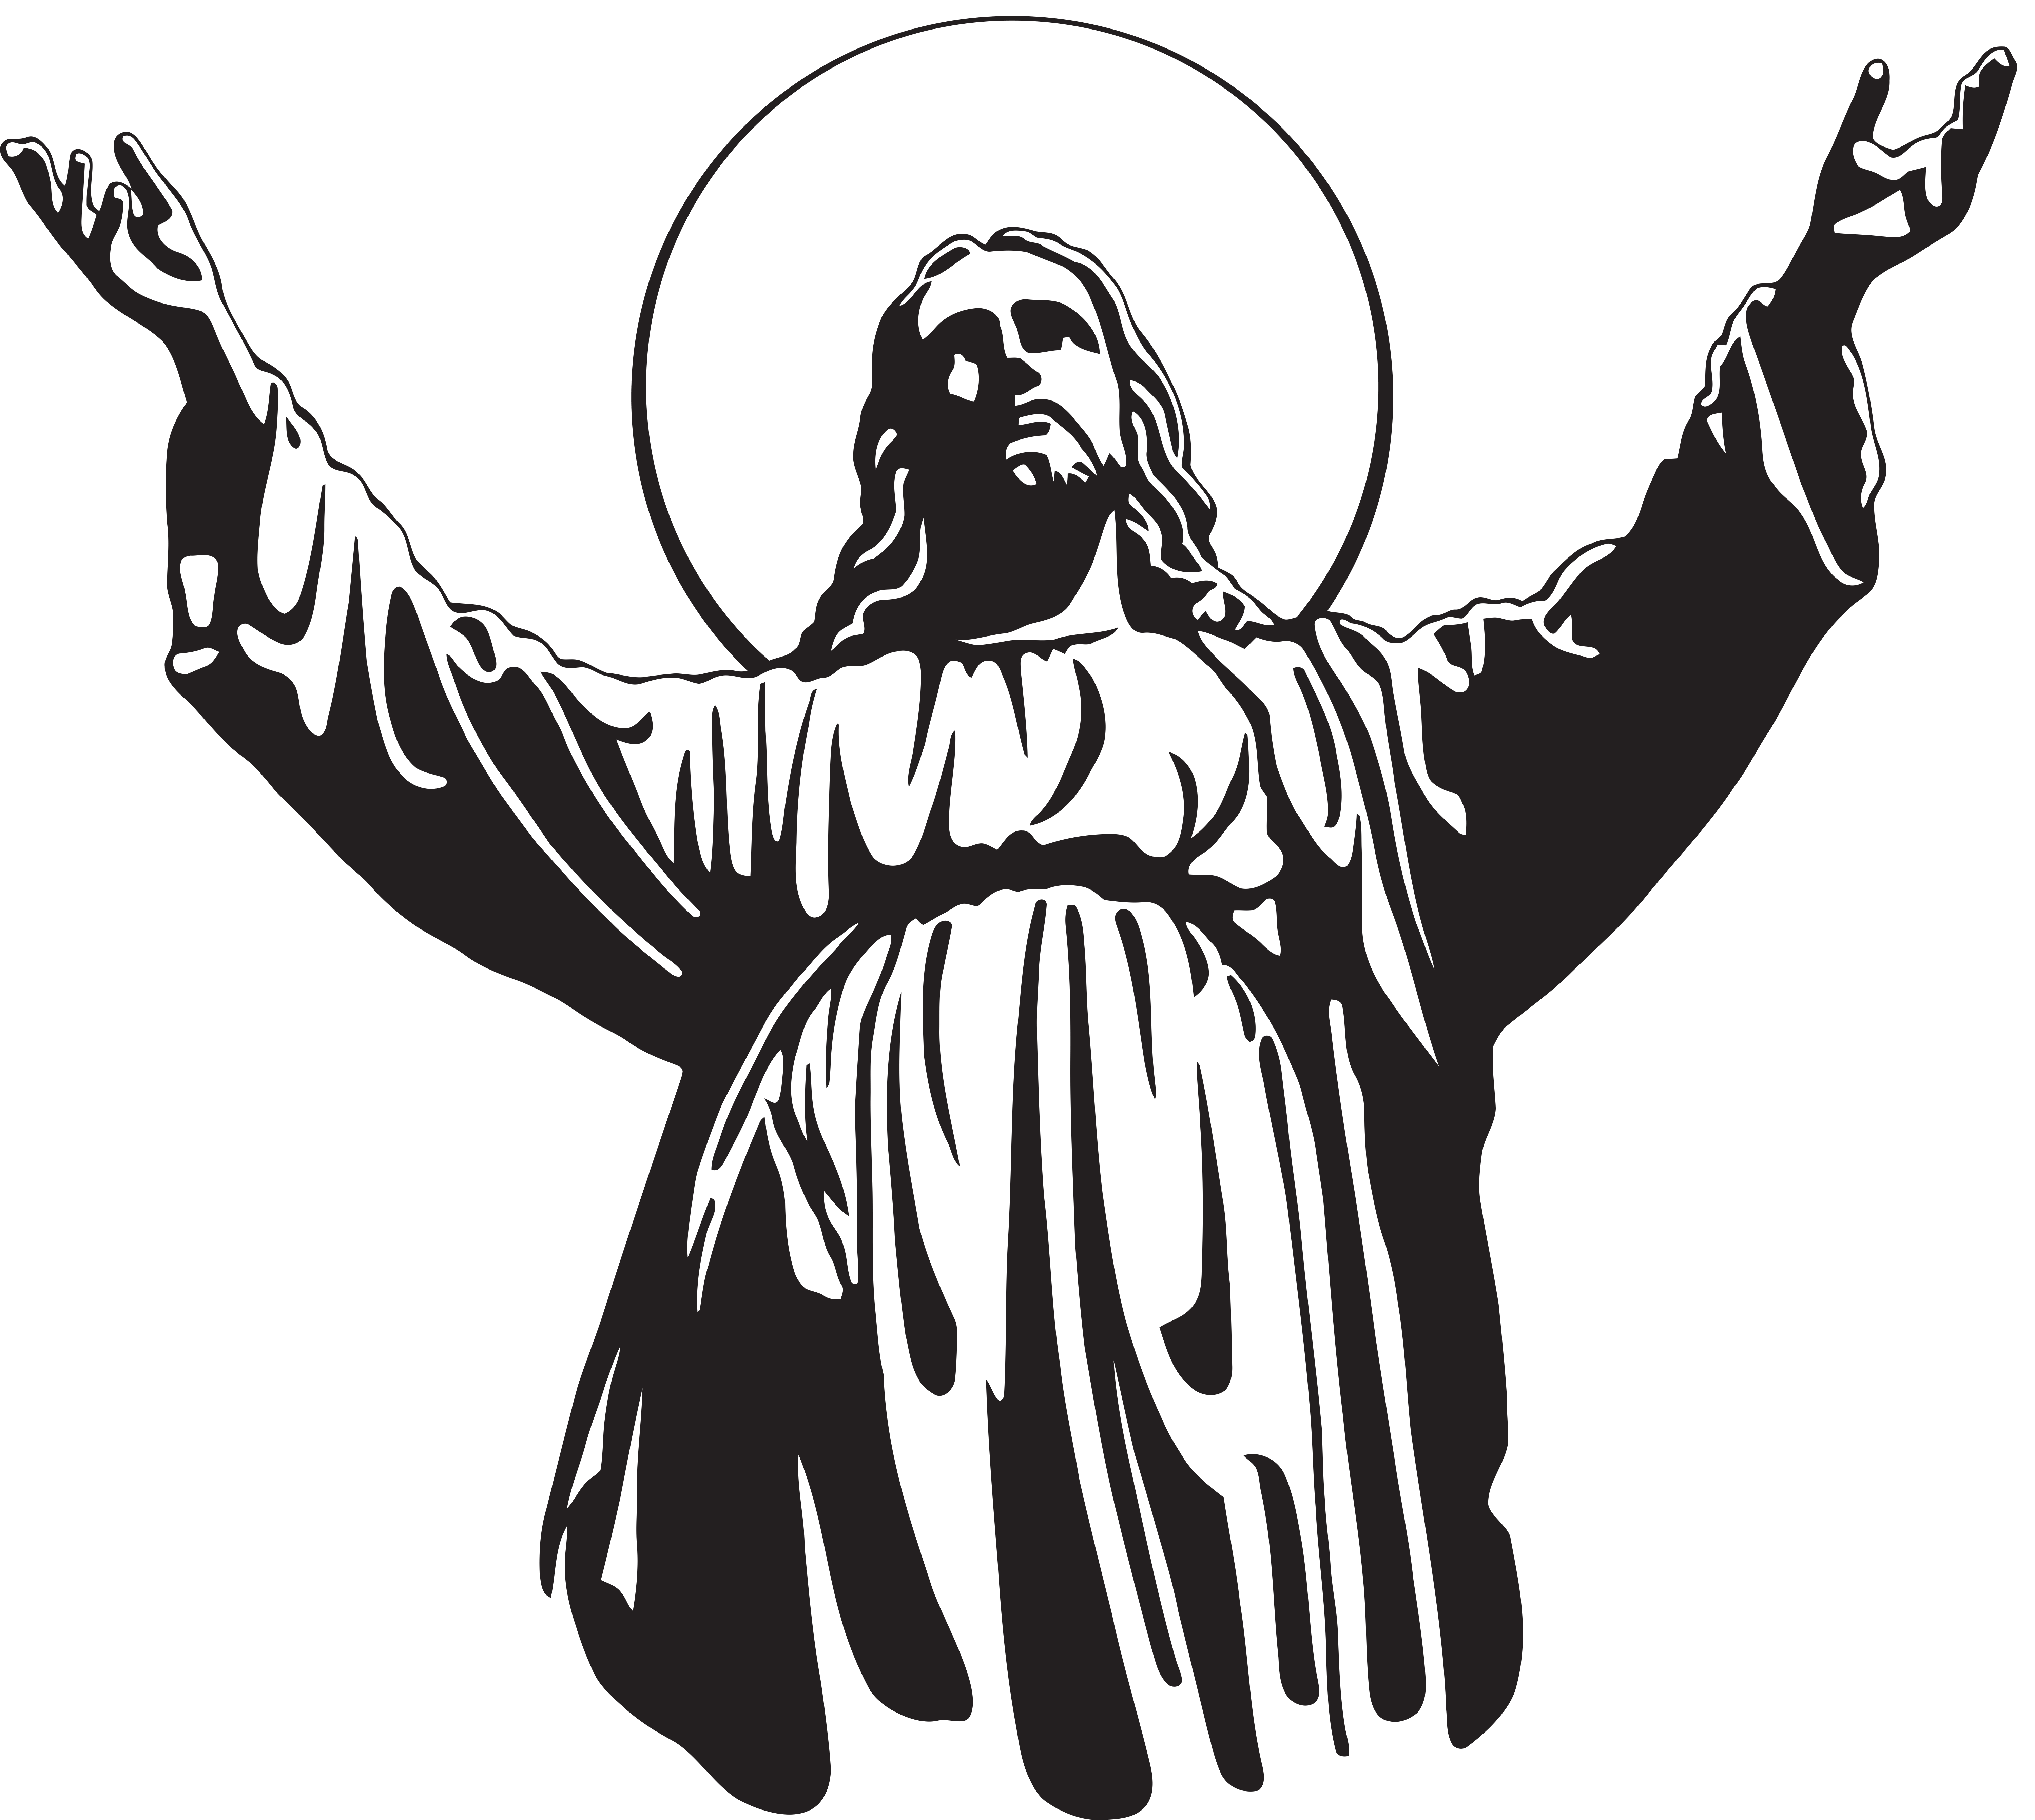 6000x5367 Jesus Christ Son Of God Png Clip Art